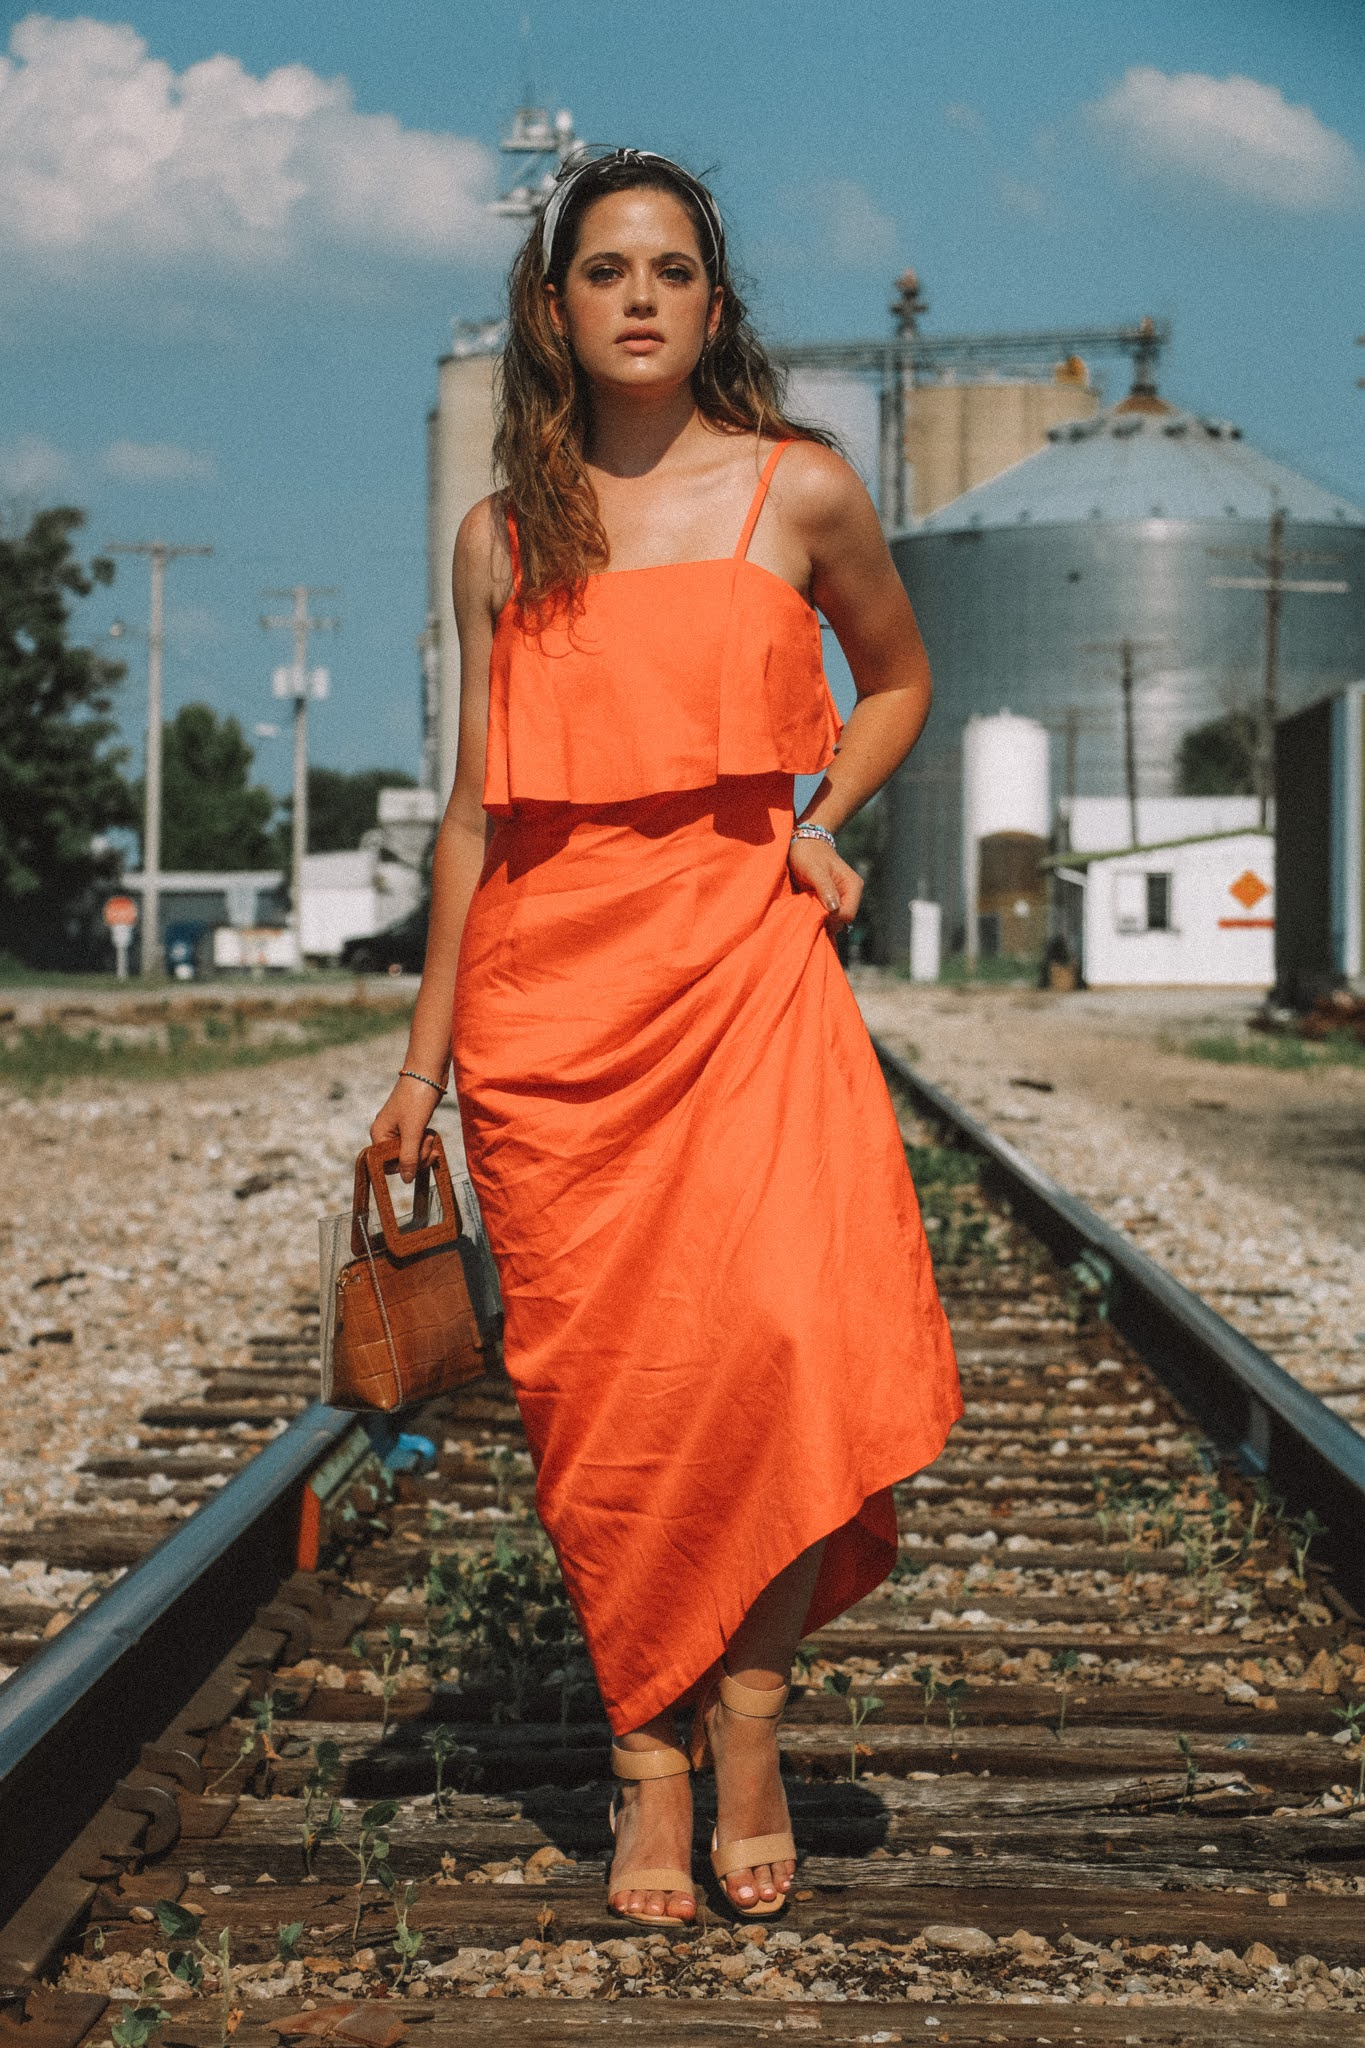 Fashion influencer Kathleen Harper wearing summer dress